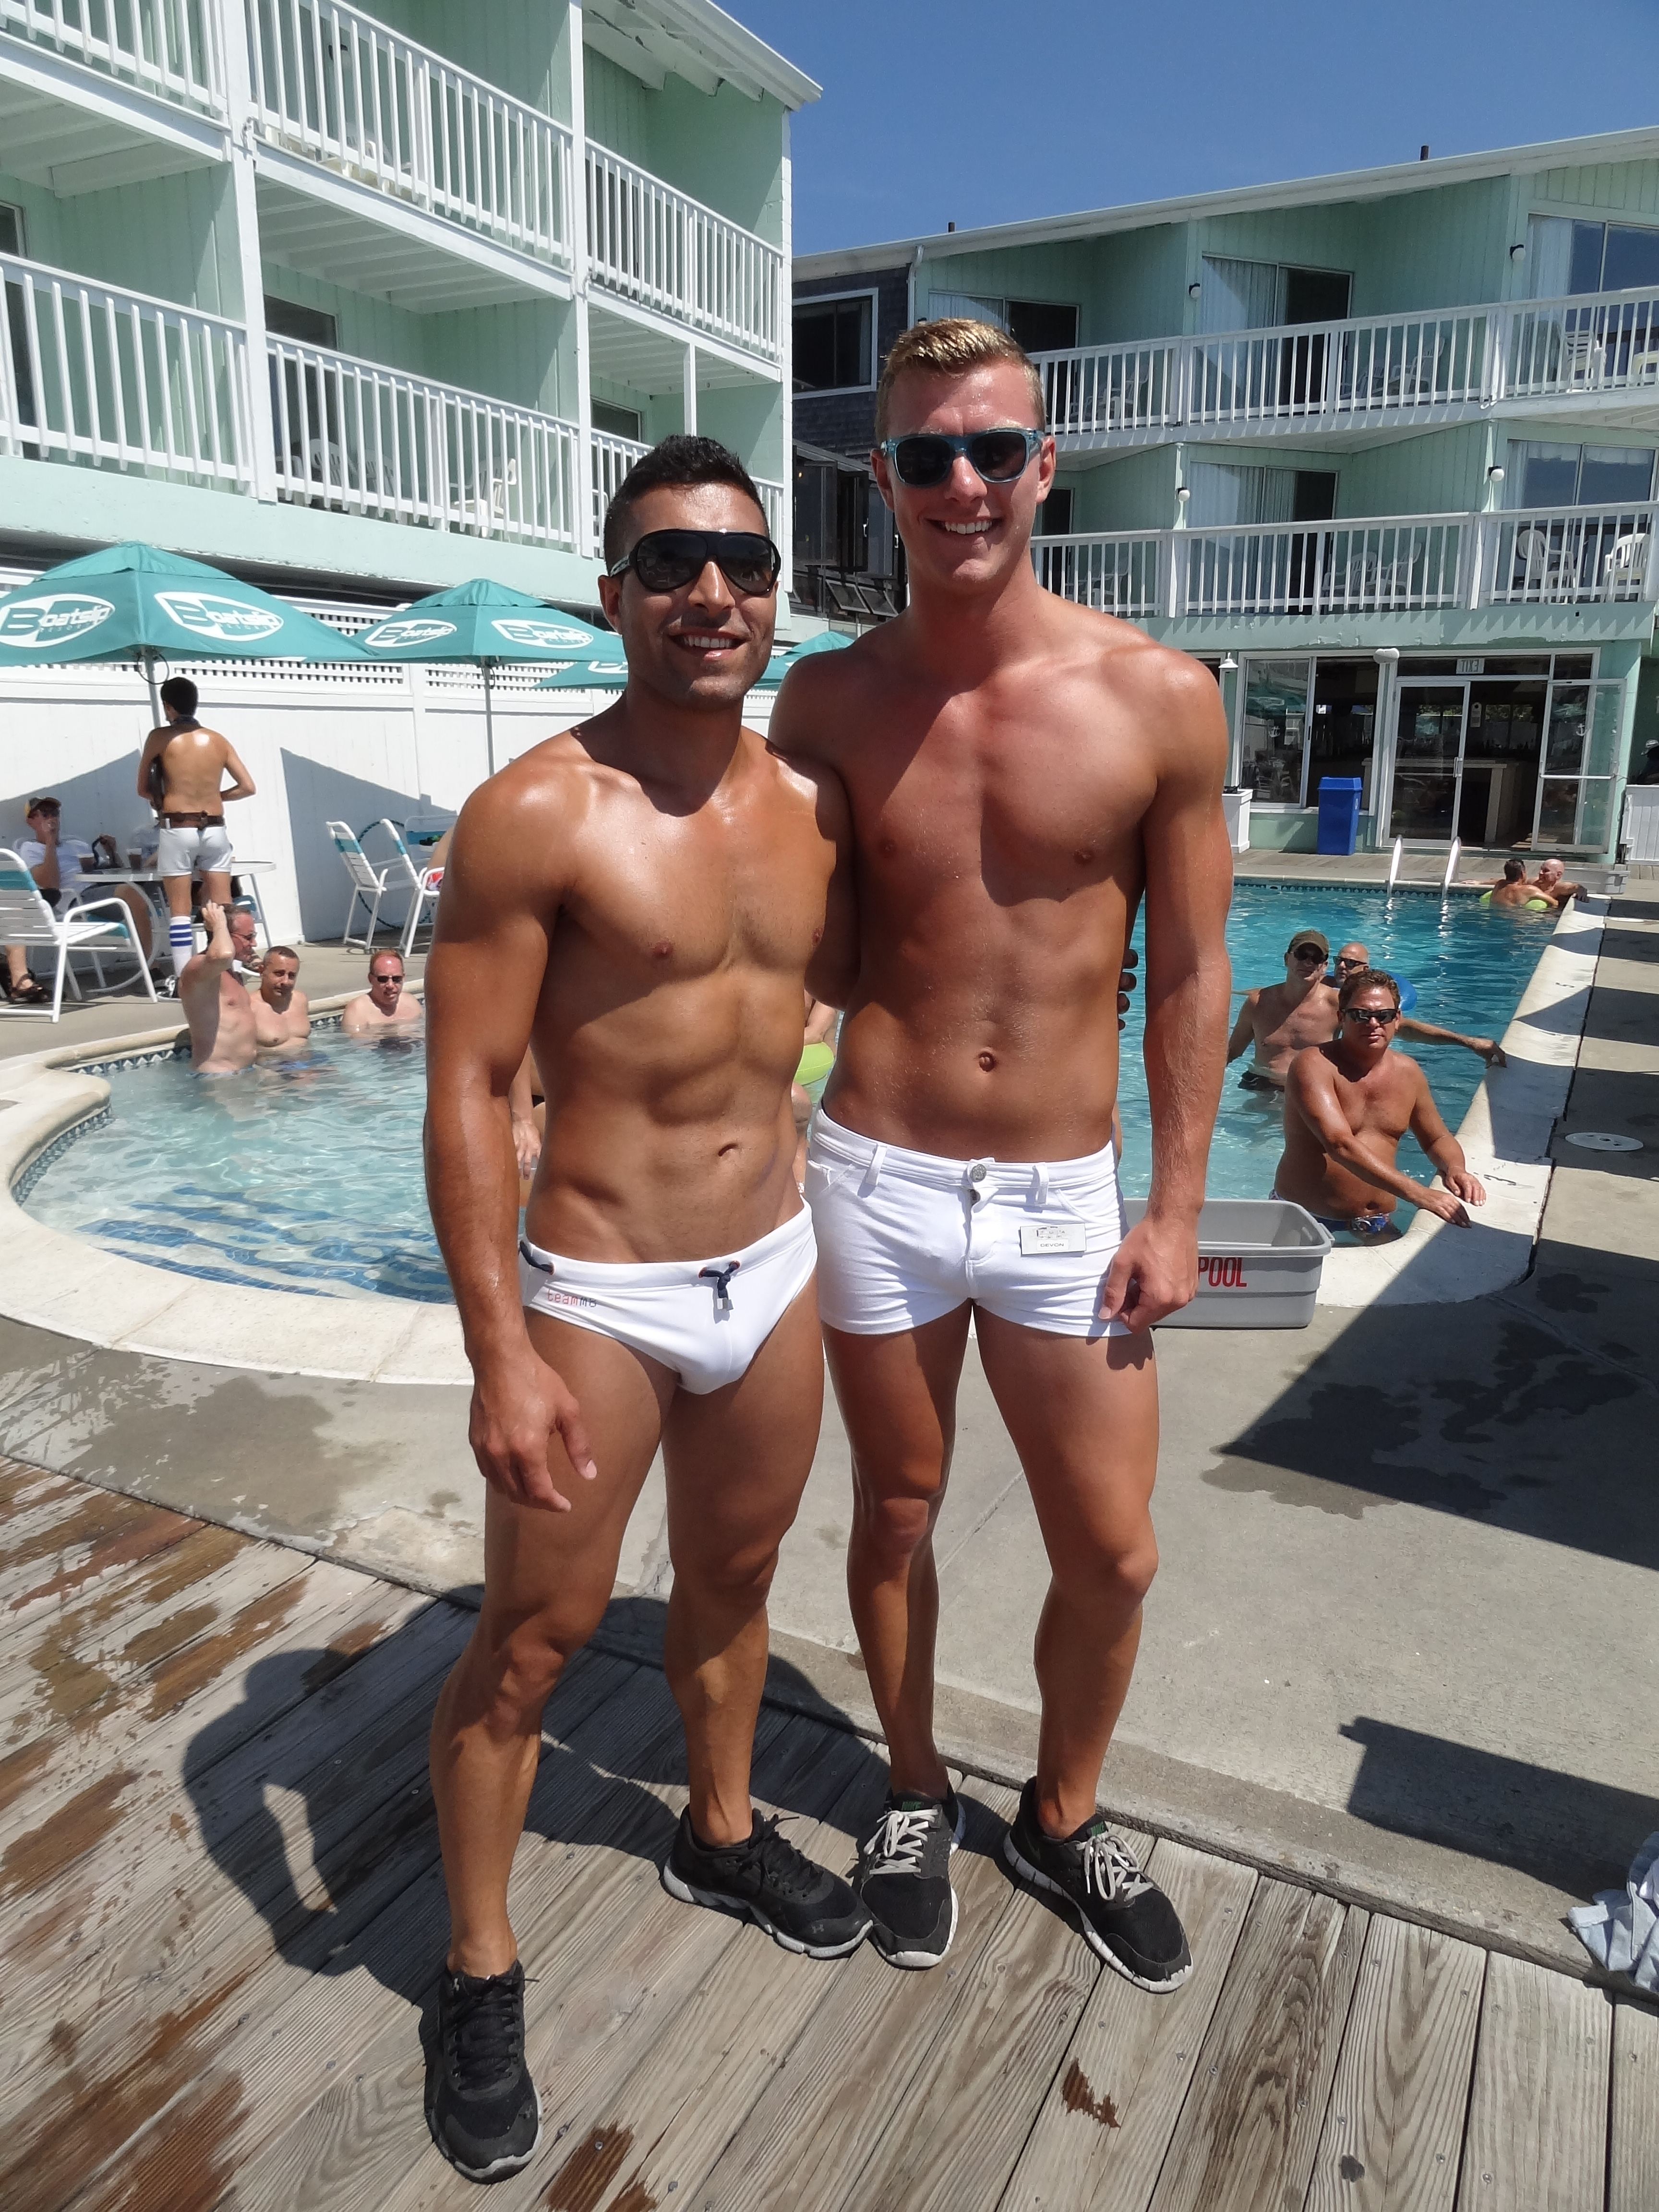 Provincetown rhode island gay